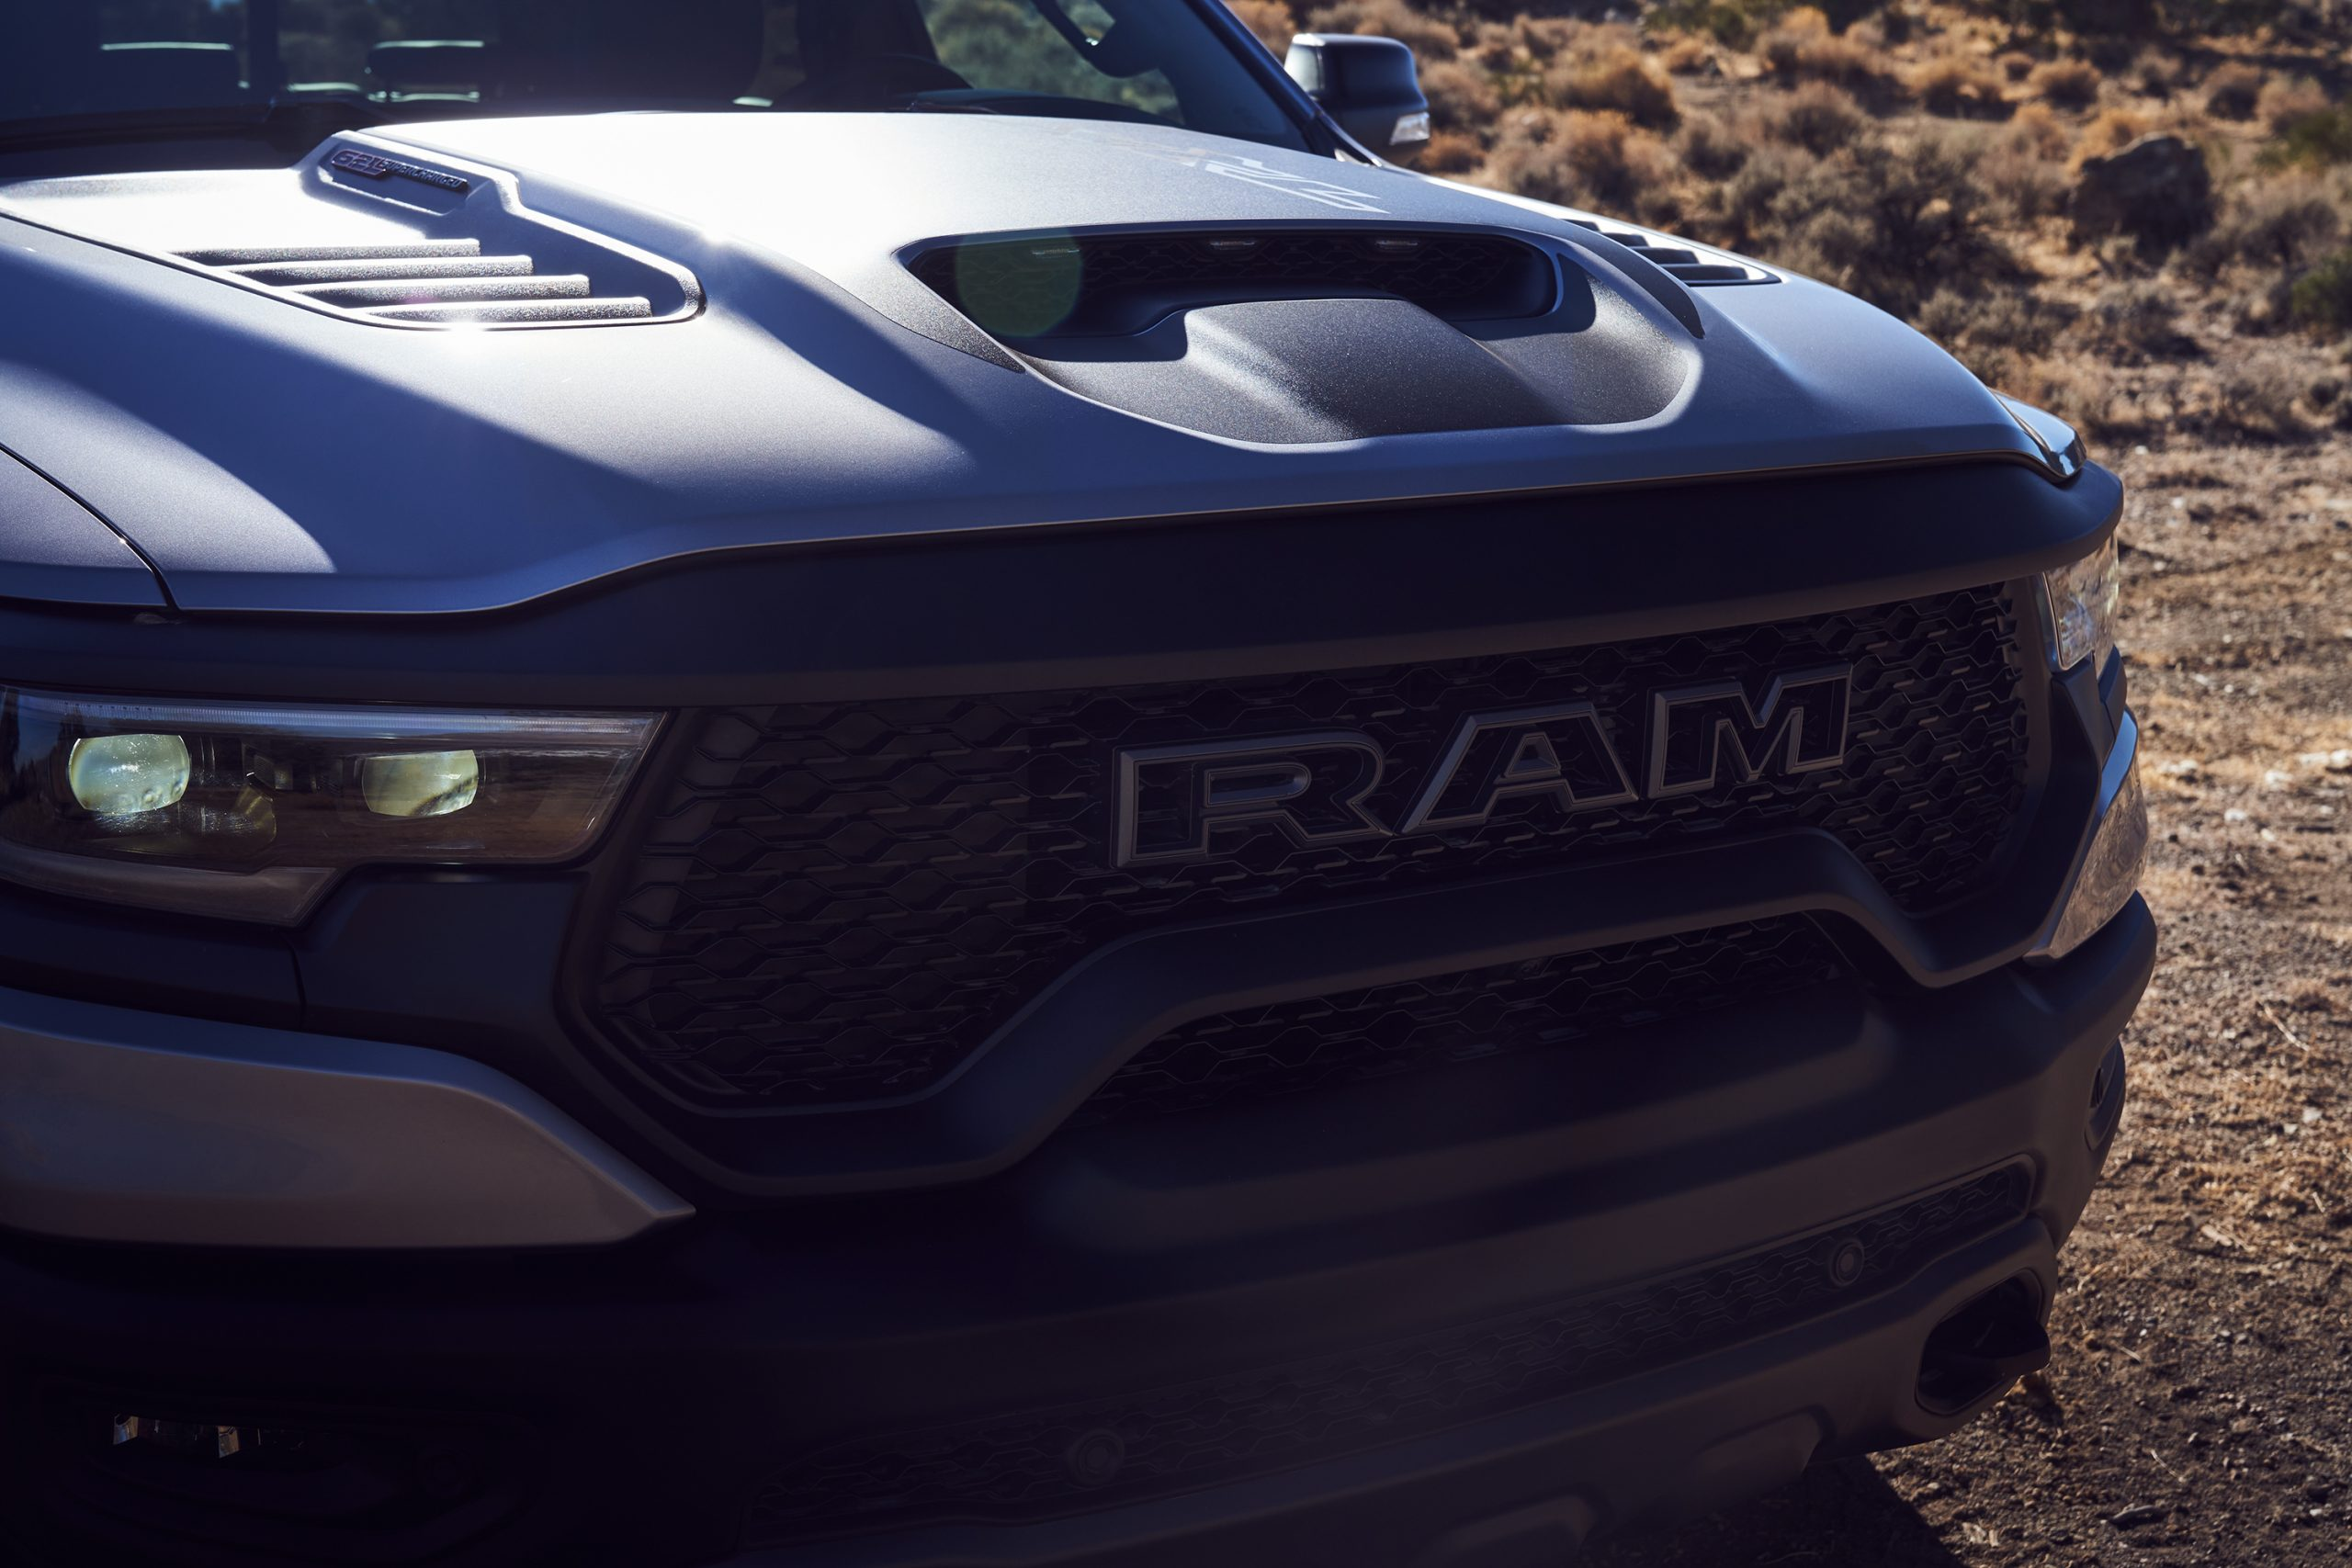 2021 Ram 1500 TRX front grille